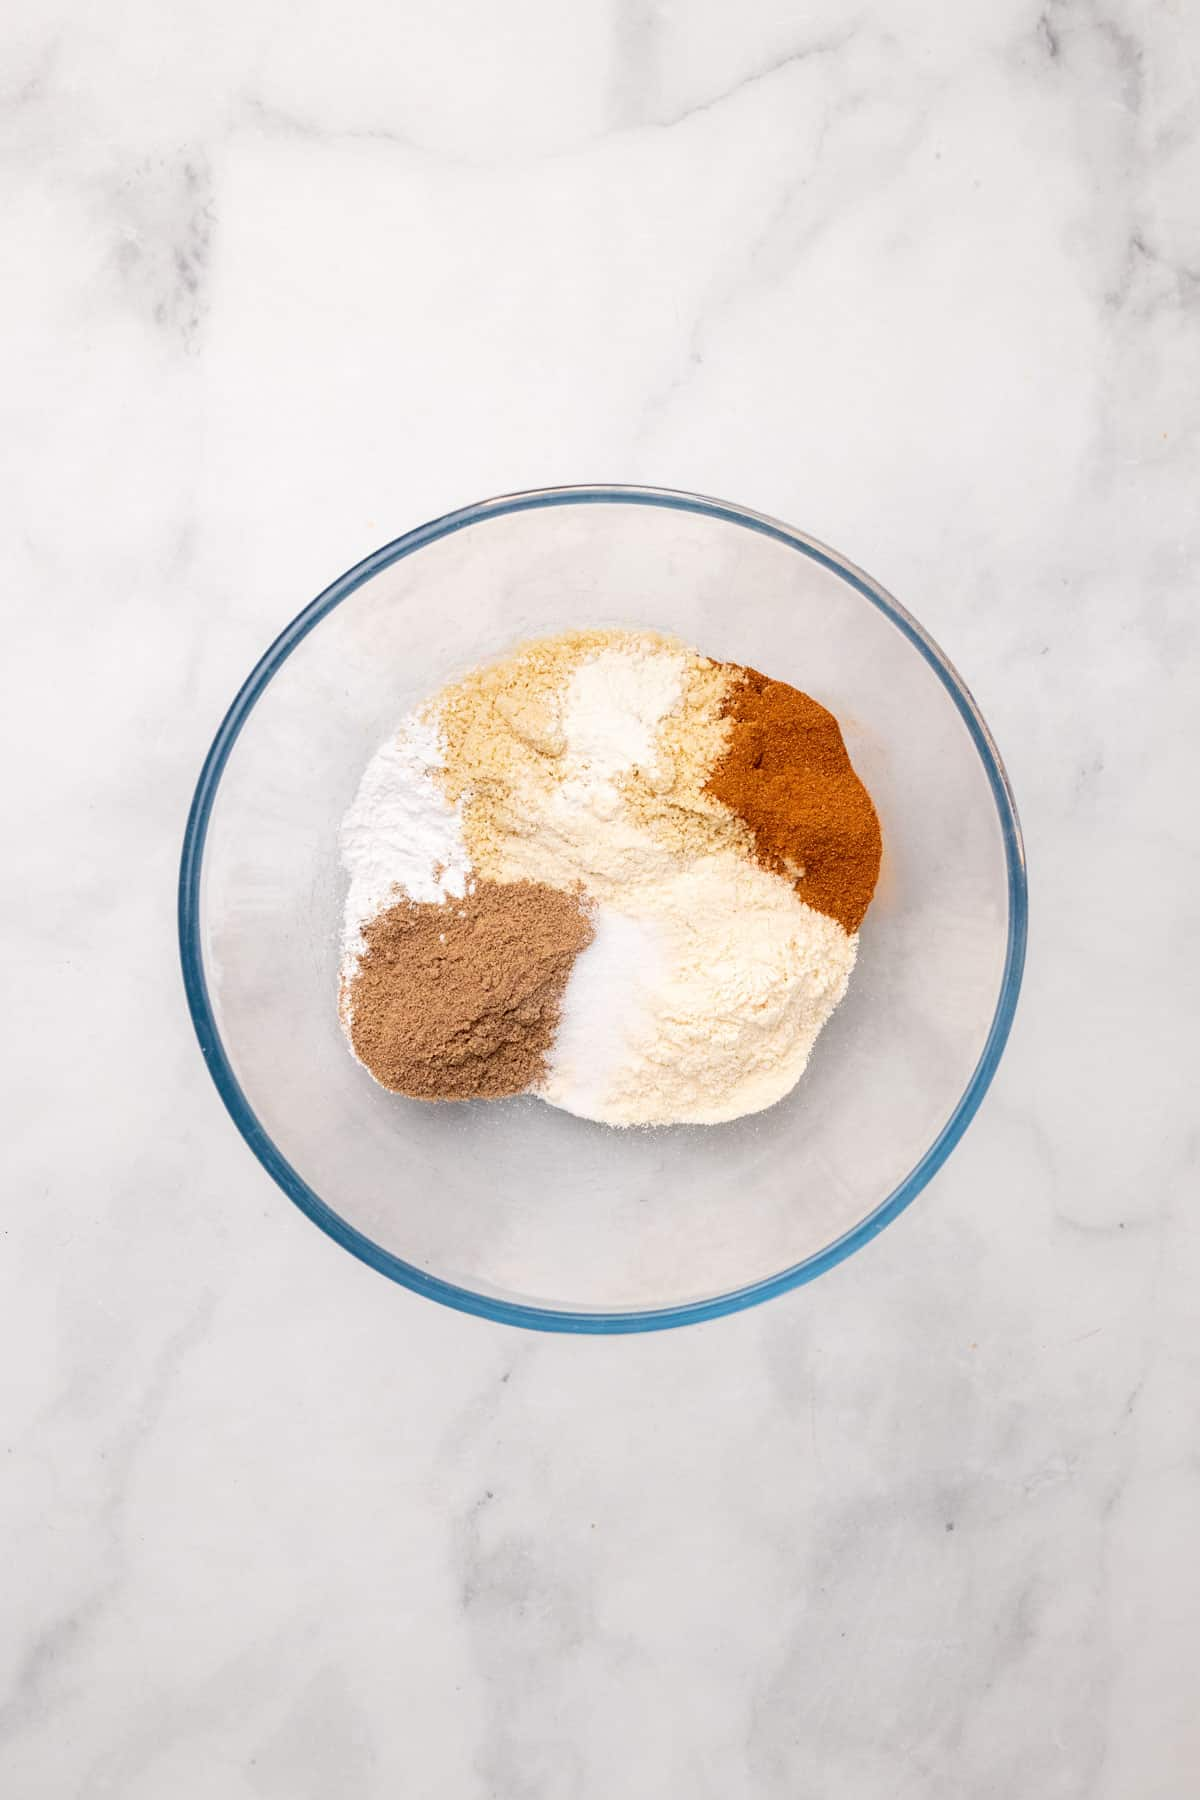 Dry ingredients in a glass bowl, unmixed